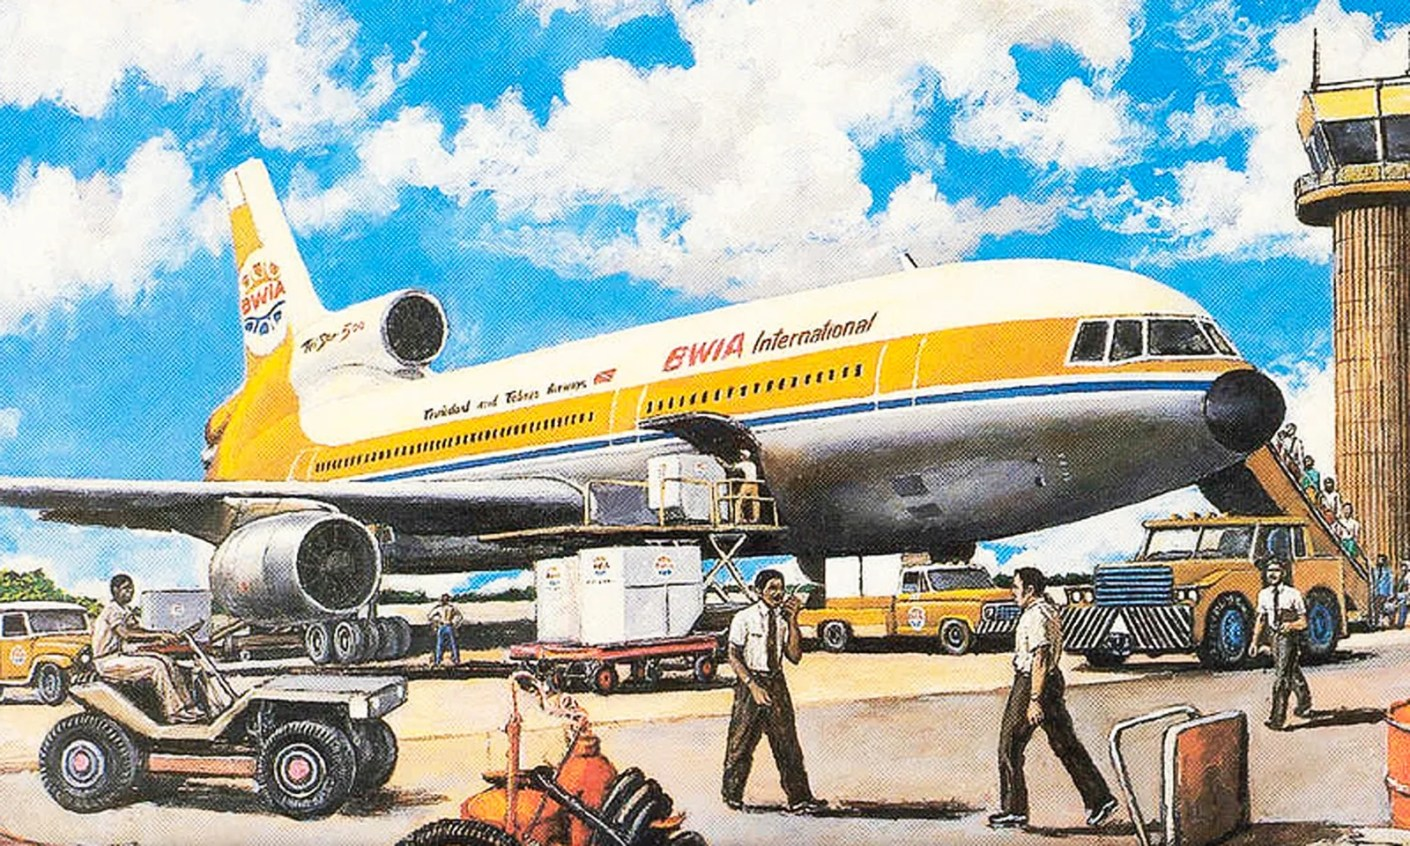 Artist's rendering of a BWIA TriStar at Port of Spain, Trinidad.